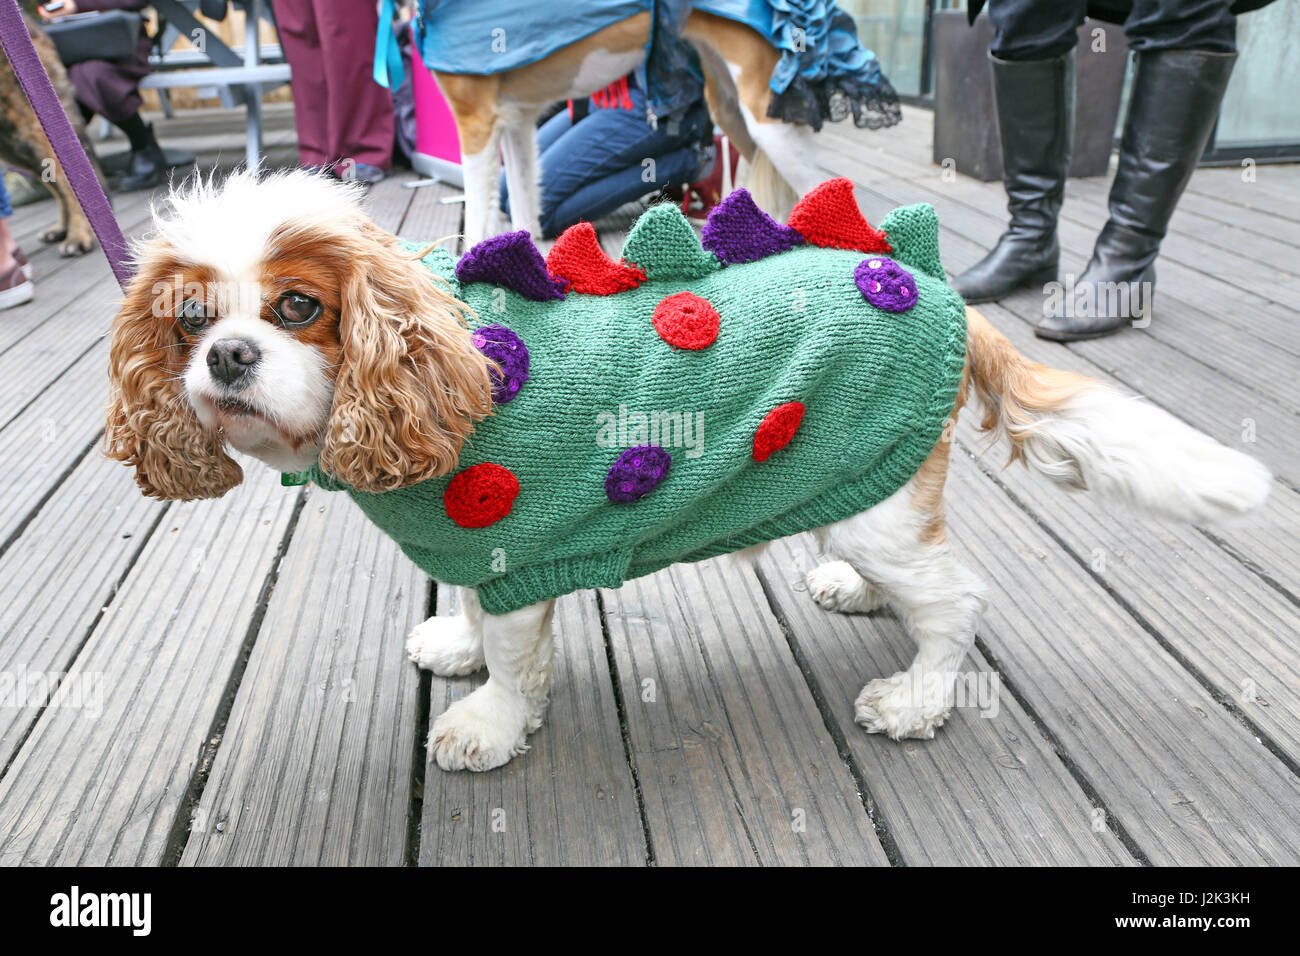 London, UK. 29th April 2017. Dashy the Cavalier King Charles Spaniel dressed as Dogzilla at the Sci-Fido cosplay - Stock Image